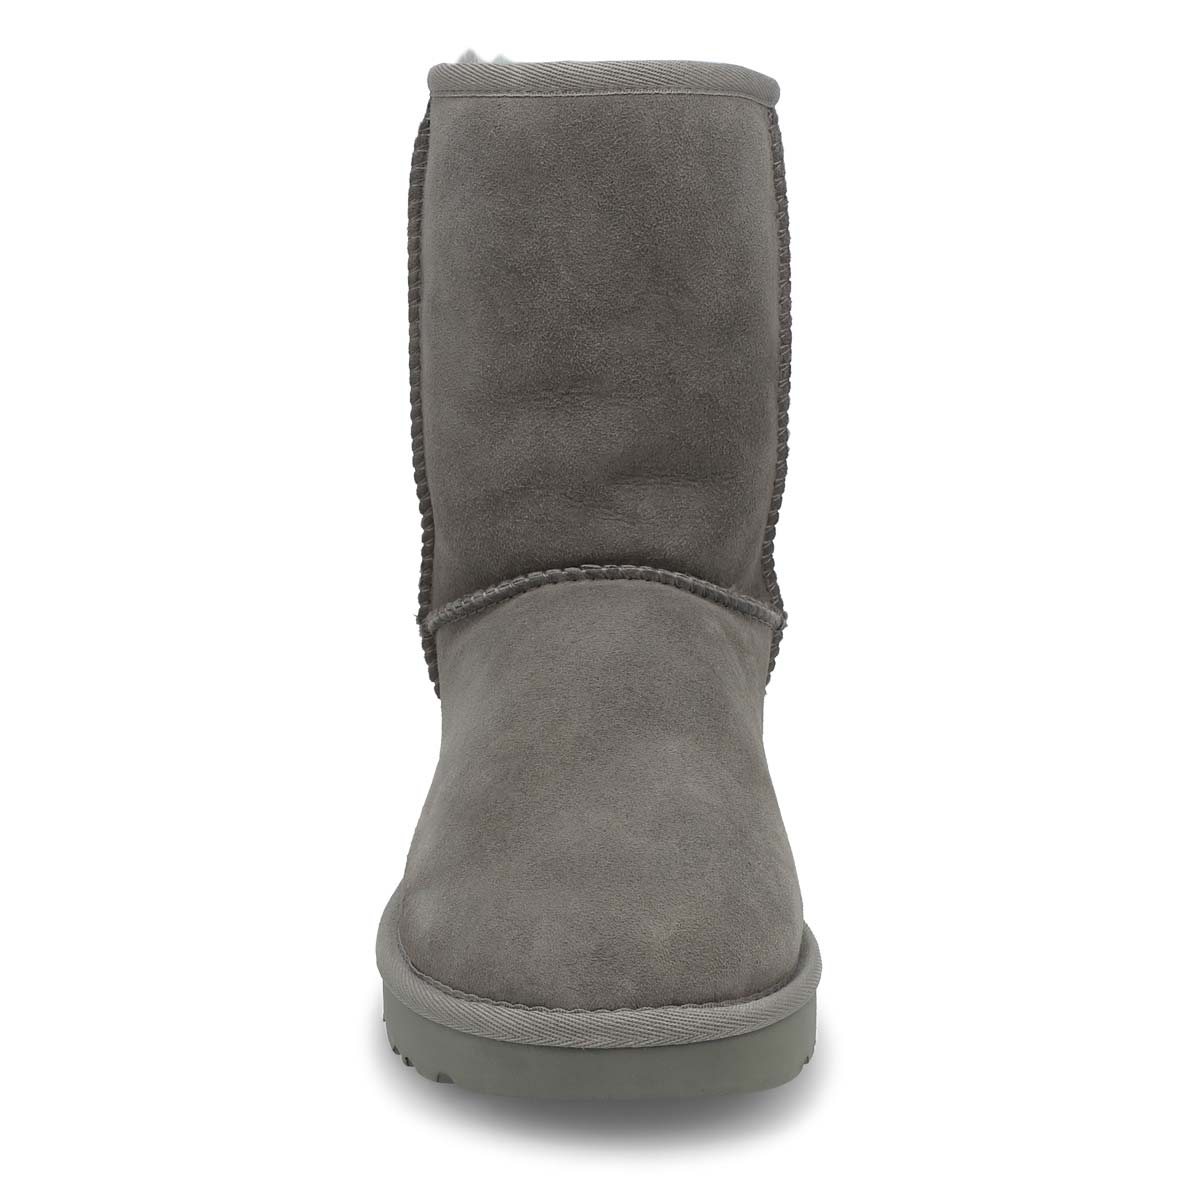 Lds Classic Short II grey sheepskin boot